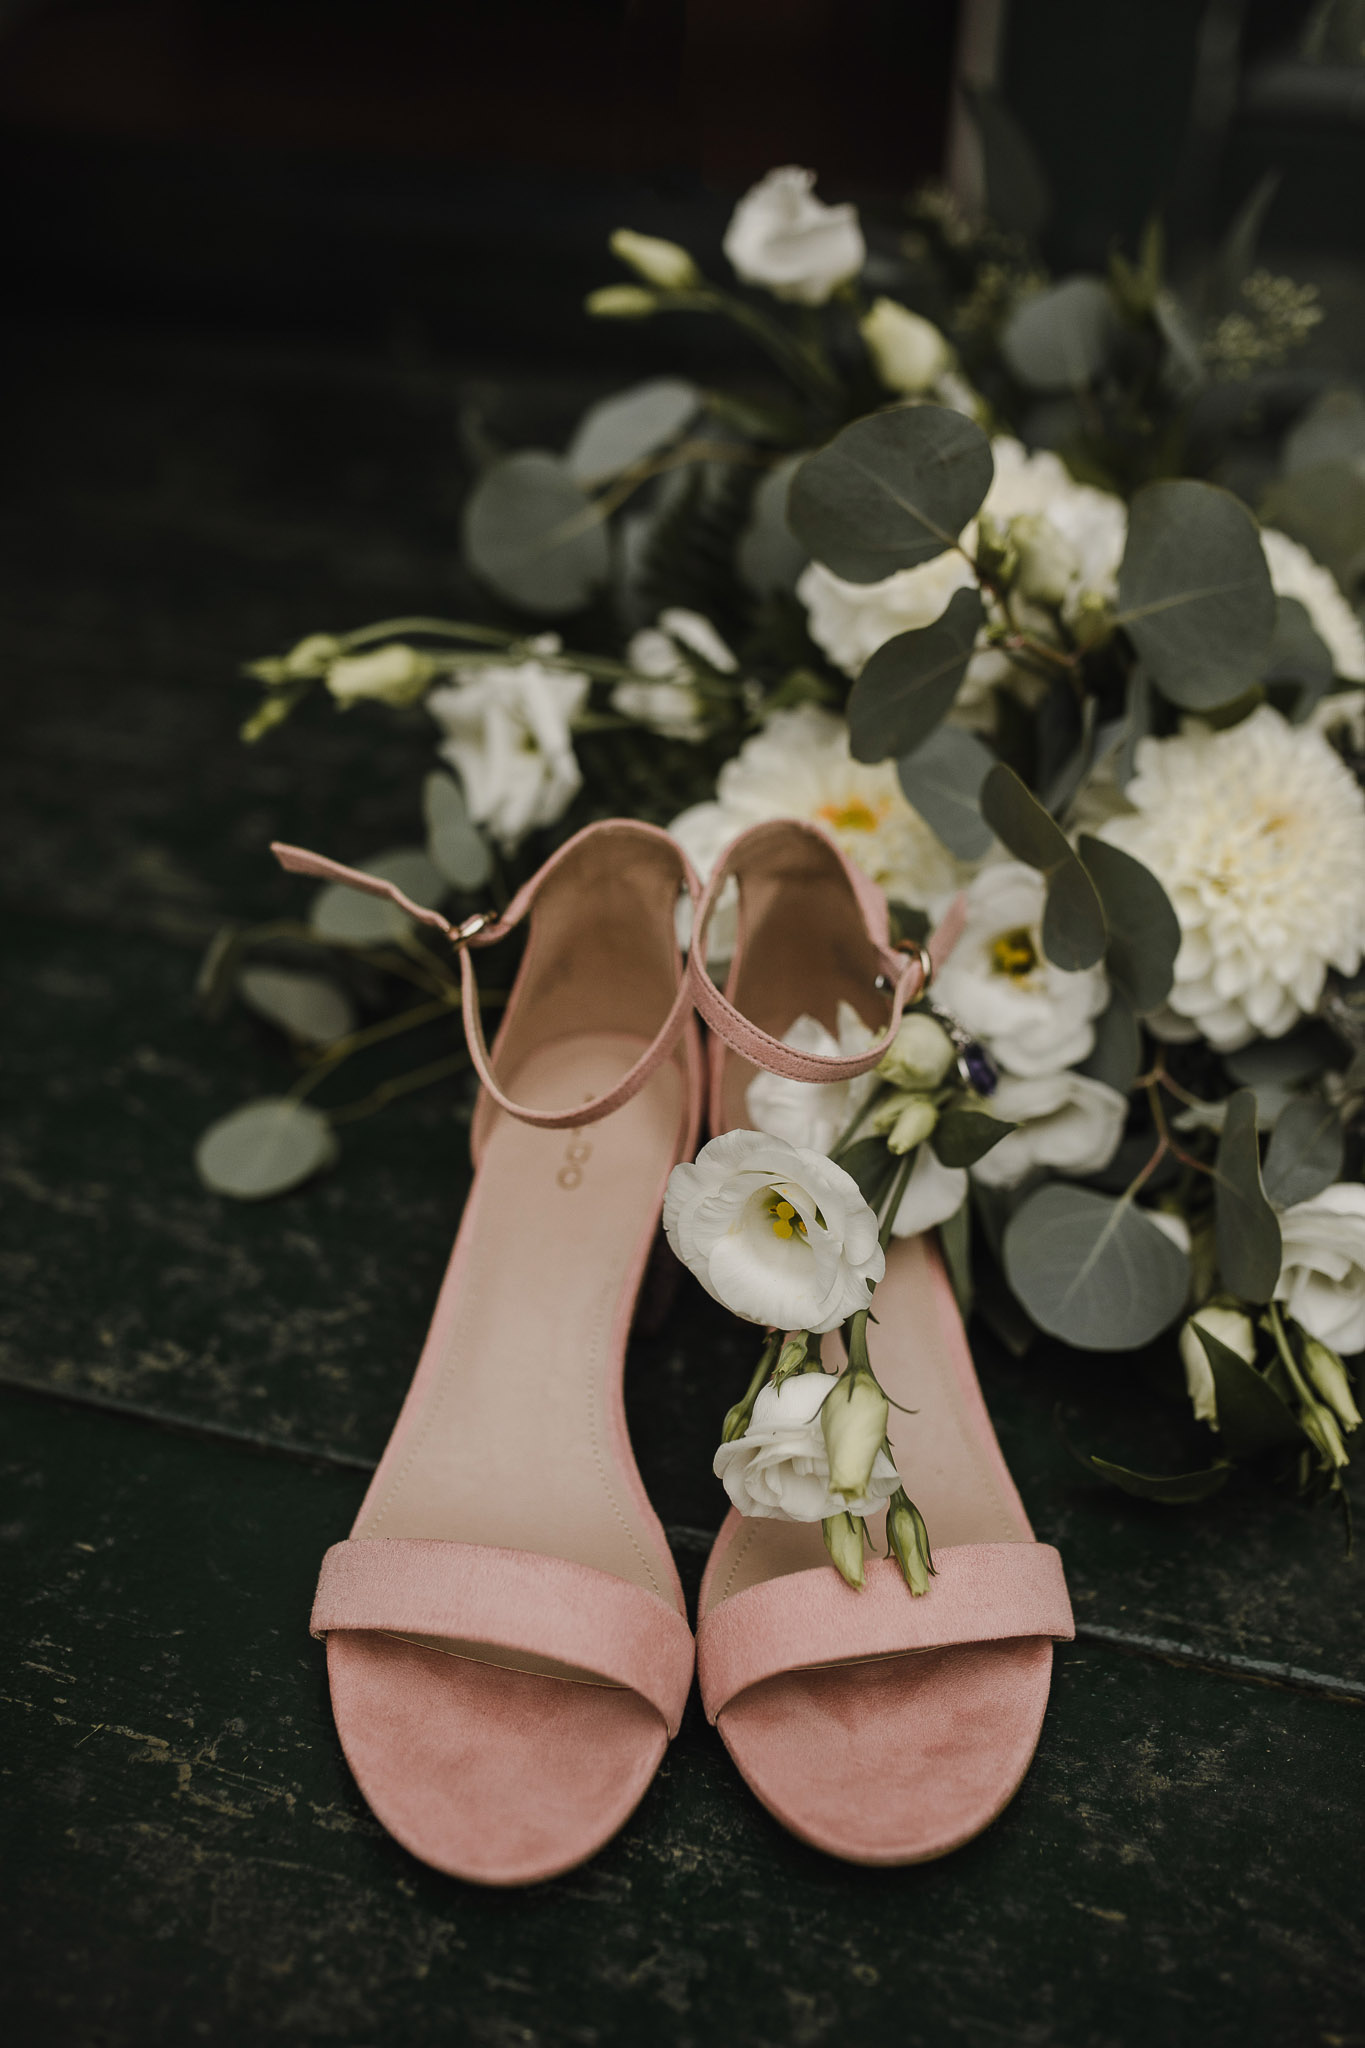 Balls Falls Conservation Area Wedding - shoes and bouquet